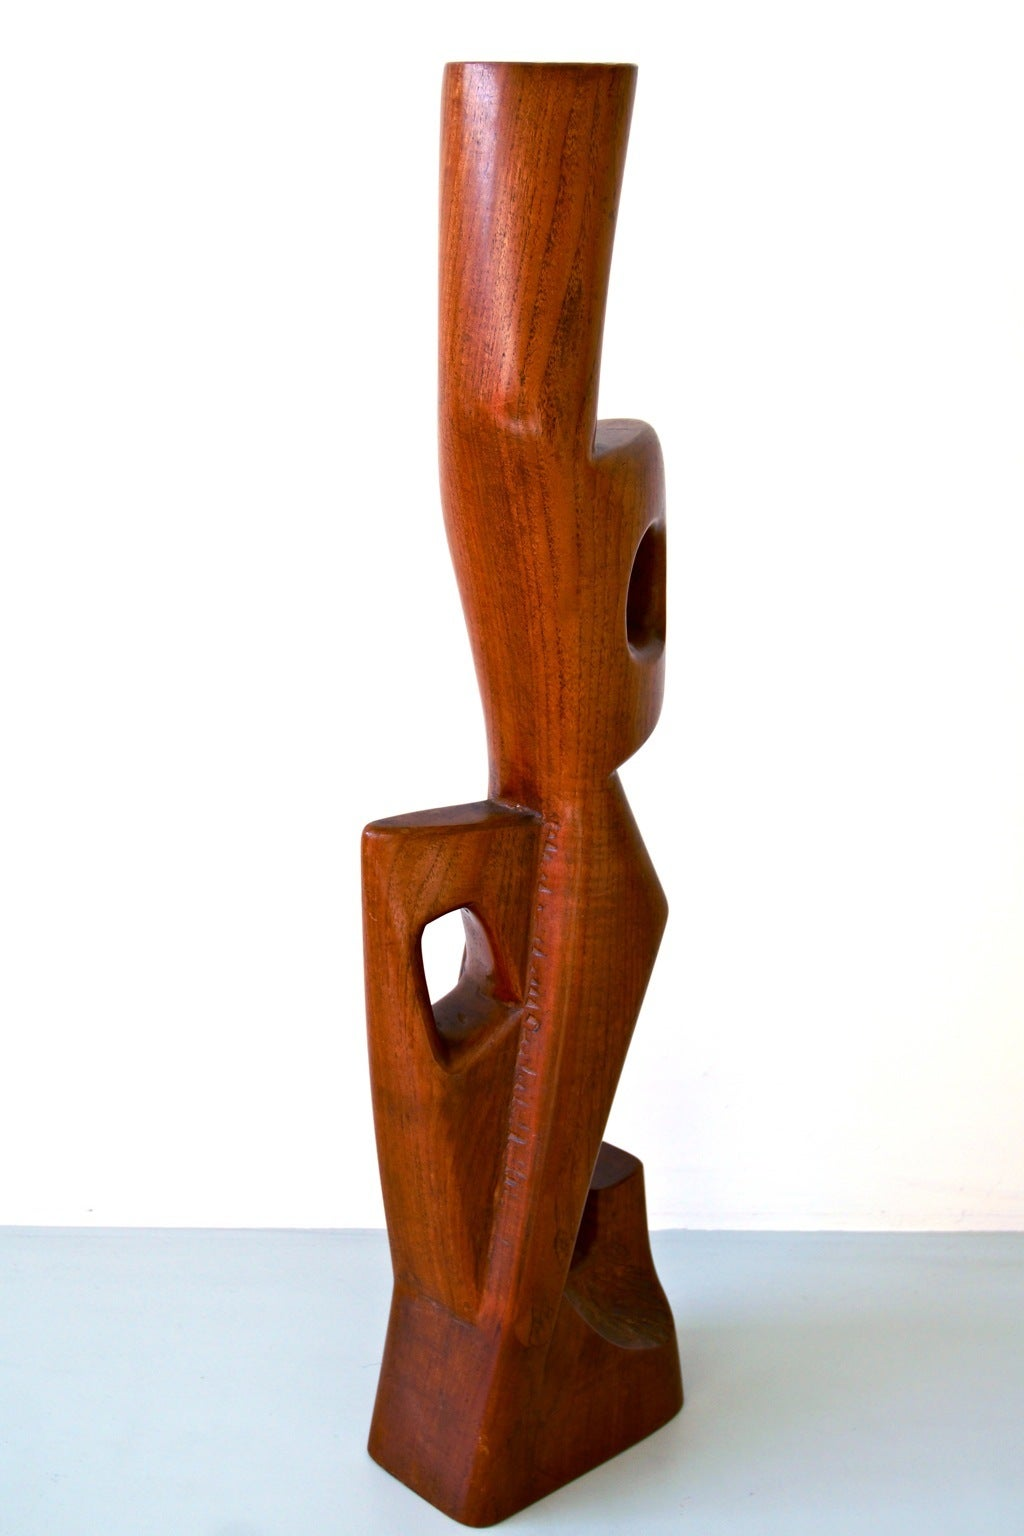 Abstract 1950s Teak Sculpture by Dolf Breetvelt 4